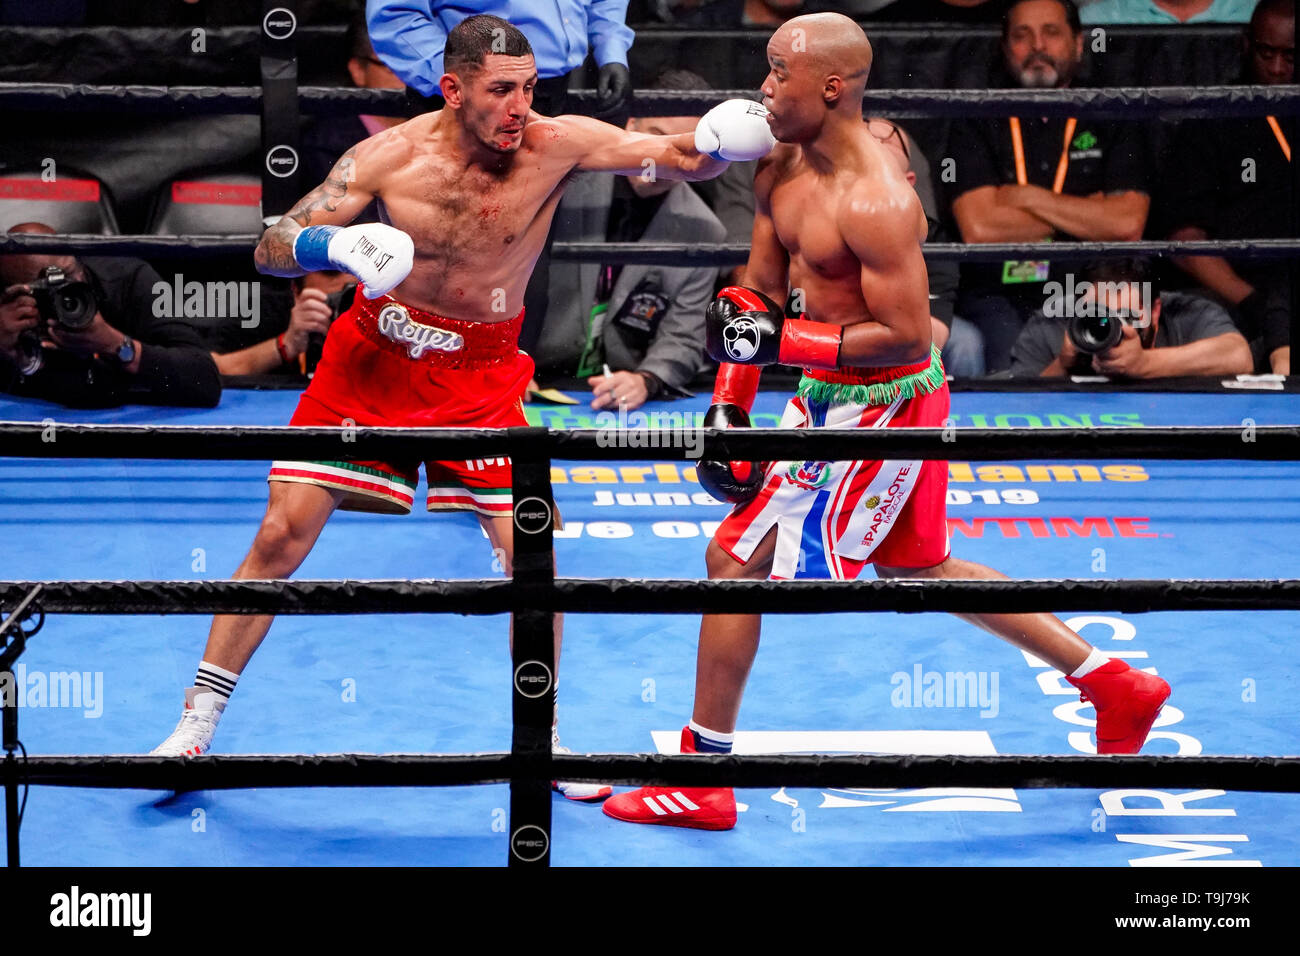 Brooklyn, New York, USA. 18th May, 2019. JUAN HERALDEZ (red with white, green, and red trim trunks) battles ARGENIS MENDEZ in a super lightweight bout at the Barclays Center in Brooklyn, New York. The fight ended in a majority draw. Credit: Joel Plummer/ZUMA Wire/Alamy Live News - Stock Image